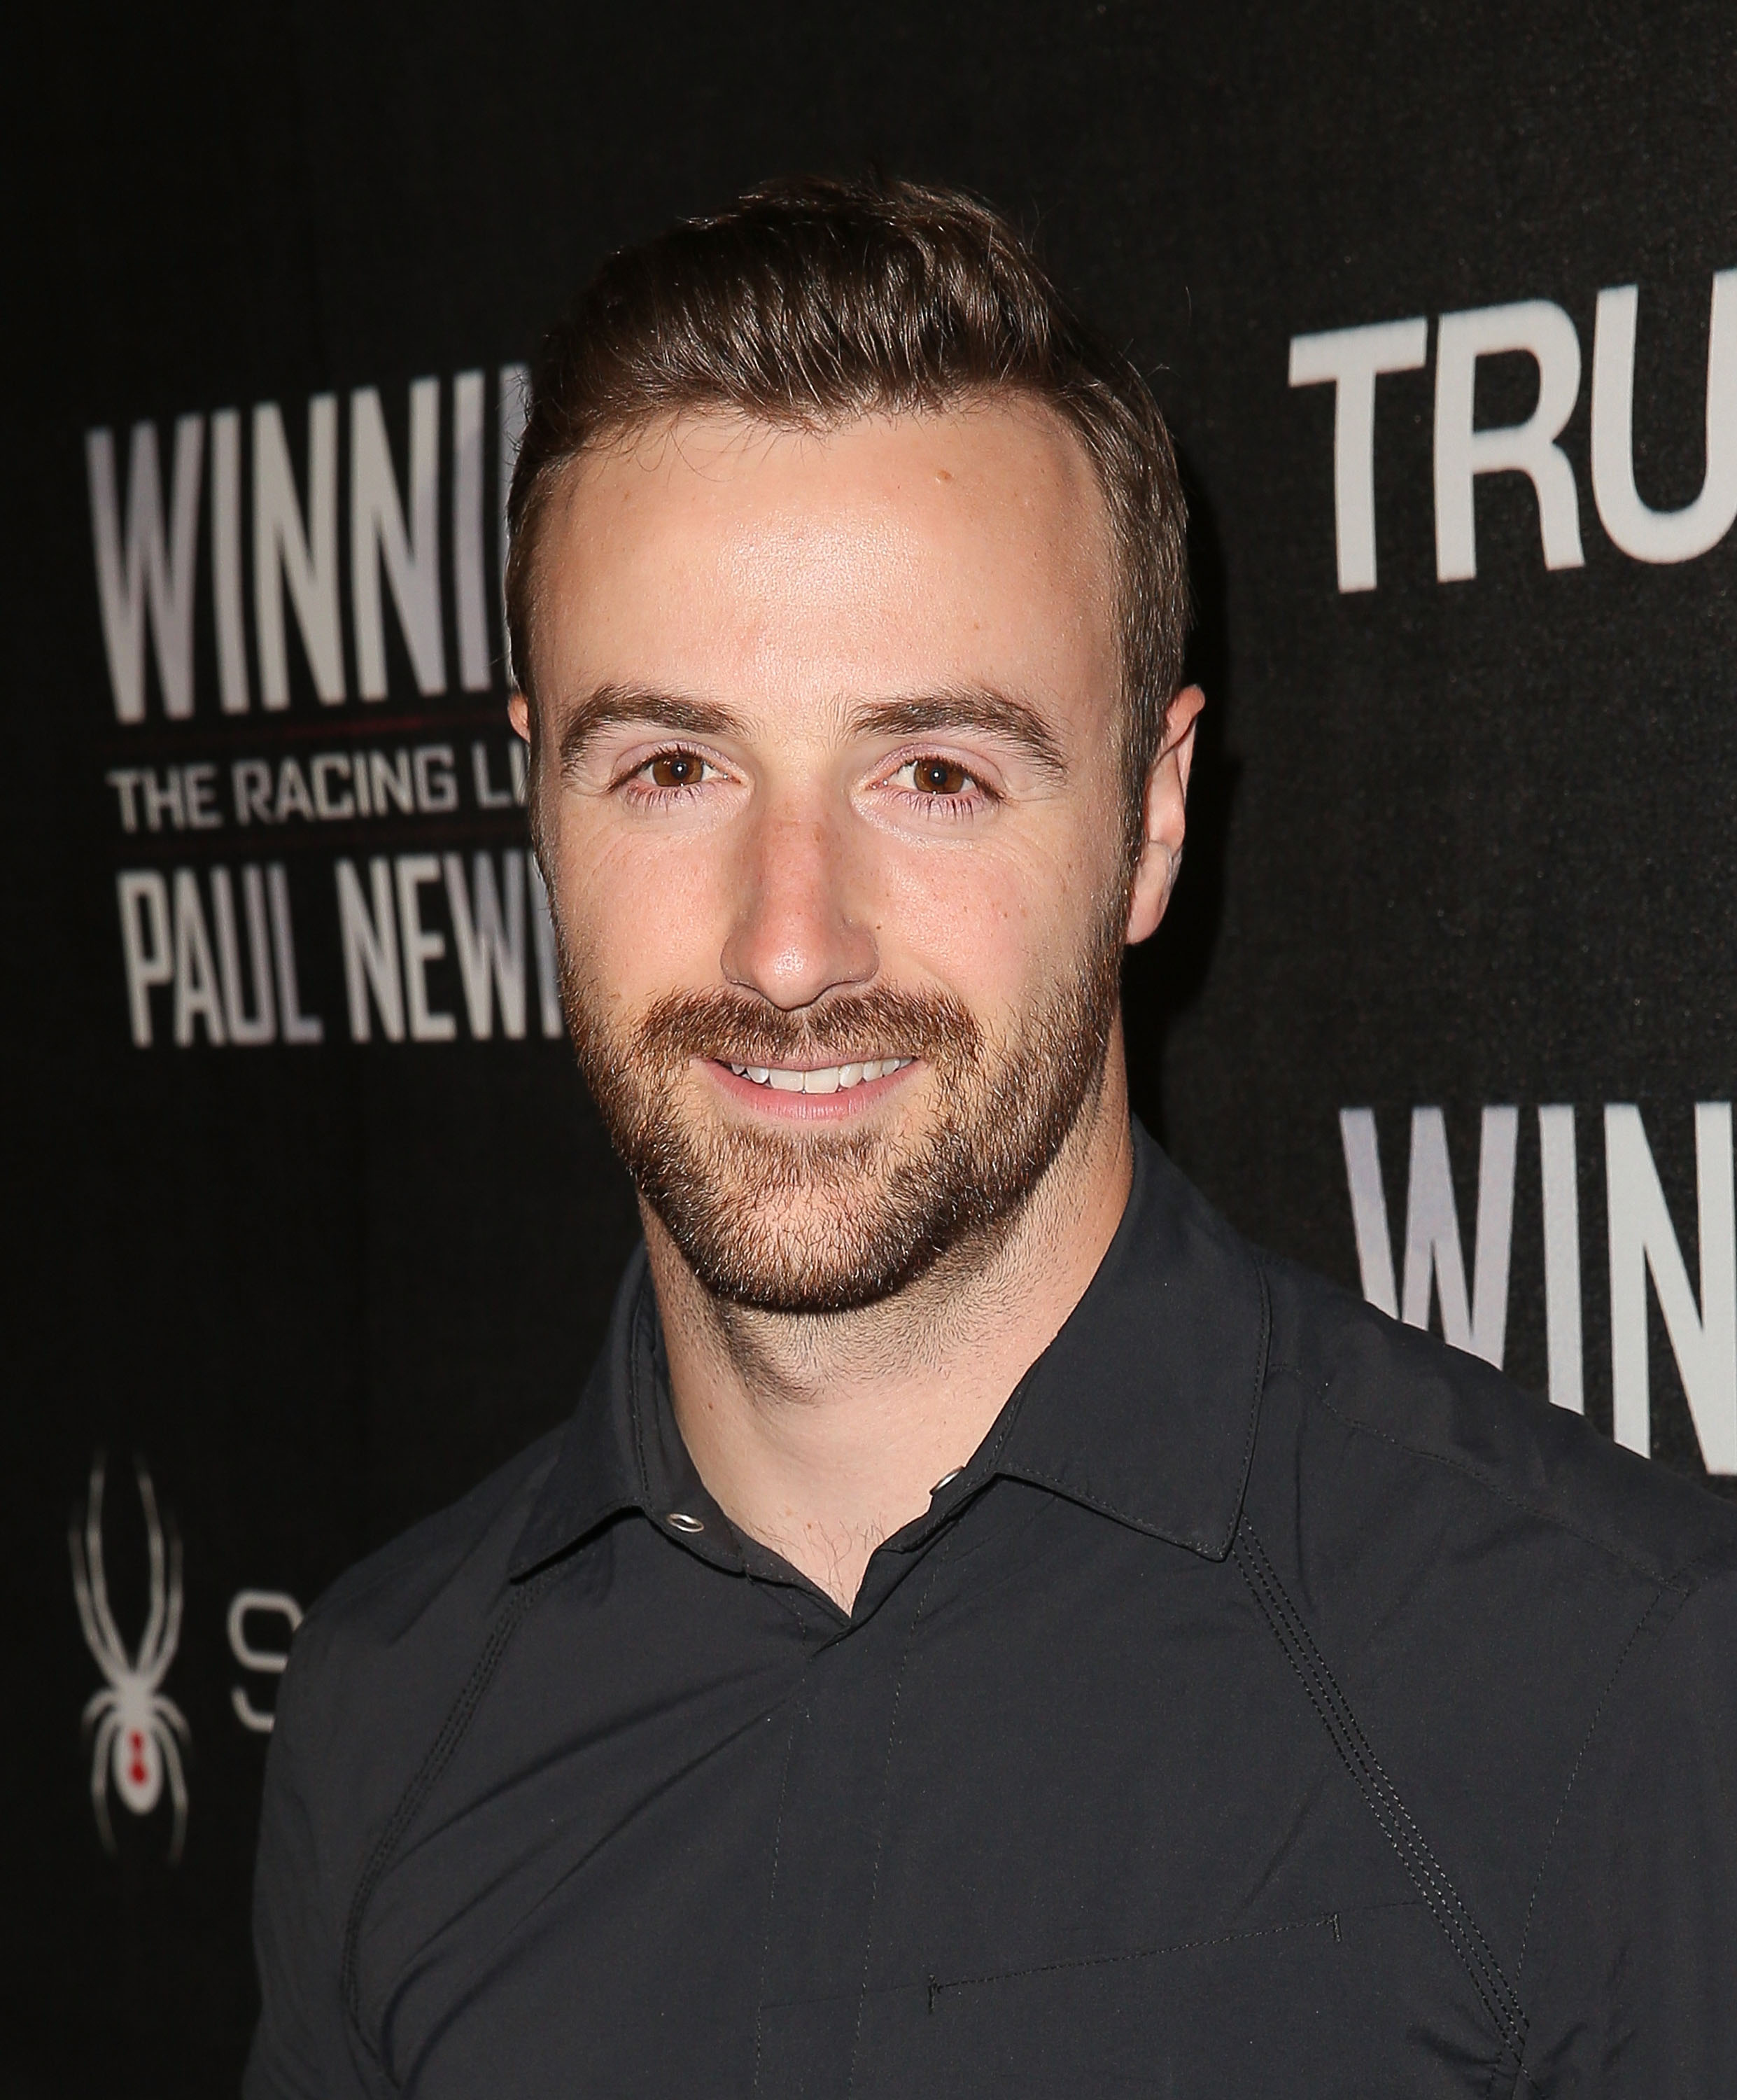 HOLLYWOOD, CA - APRIL 16: Professional racing driver James Hinchcliffe attends the charity screening of 'WINNING: The Racing Life Of Paul Newman' at the El Capitan Theatre on April 16, 2015 in Hollywood, California.   Imeh Akpanudosen/Getty Images/AFP